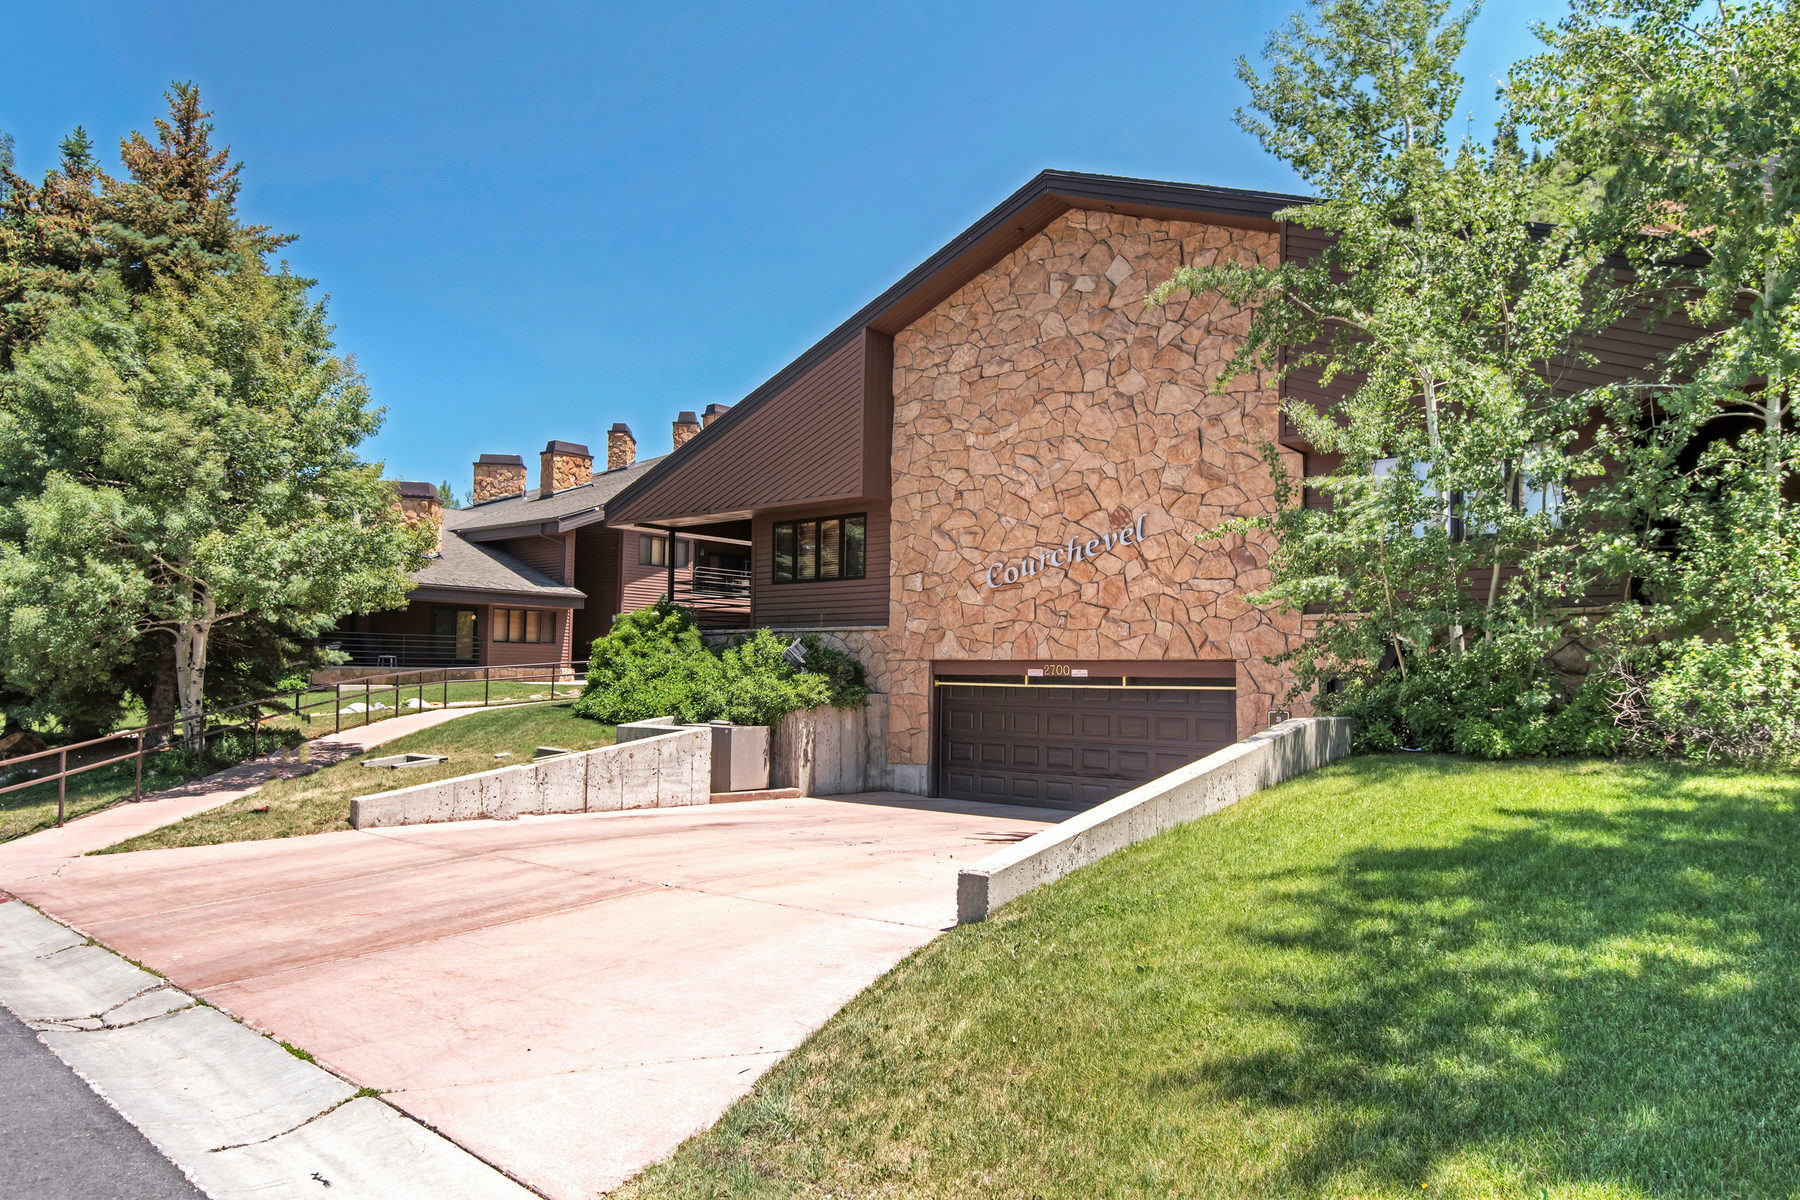 Кооперативная квартира для того Продажа на Recently Updated Courchevel Unit in a Very Desirable Location 2700 Deer Valley Dr #C204 Park City, Юта, 84060 Соединенные Штаты